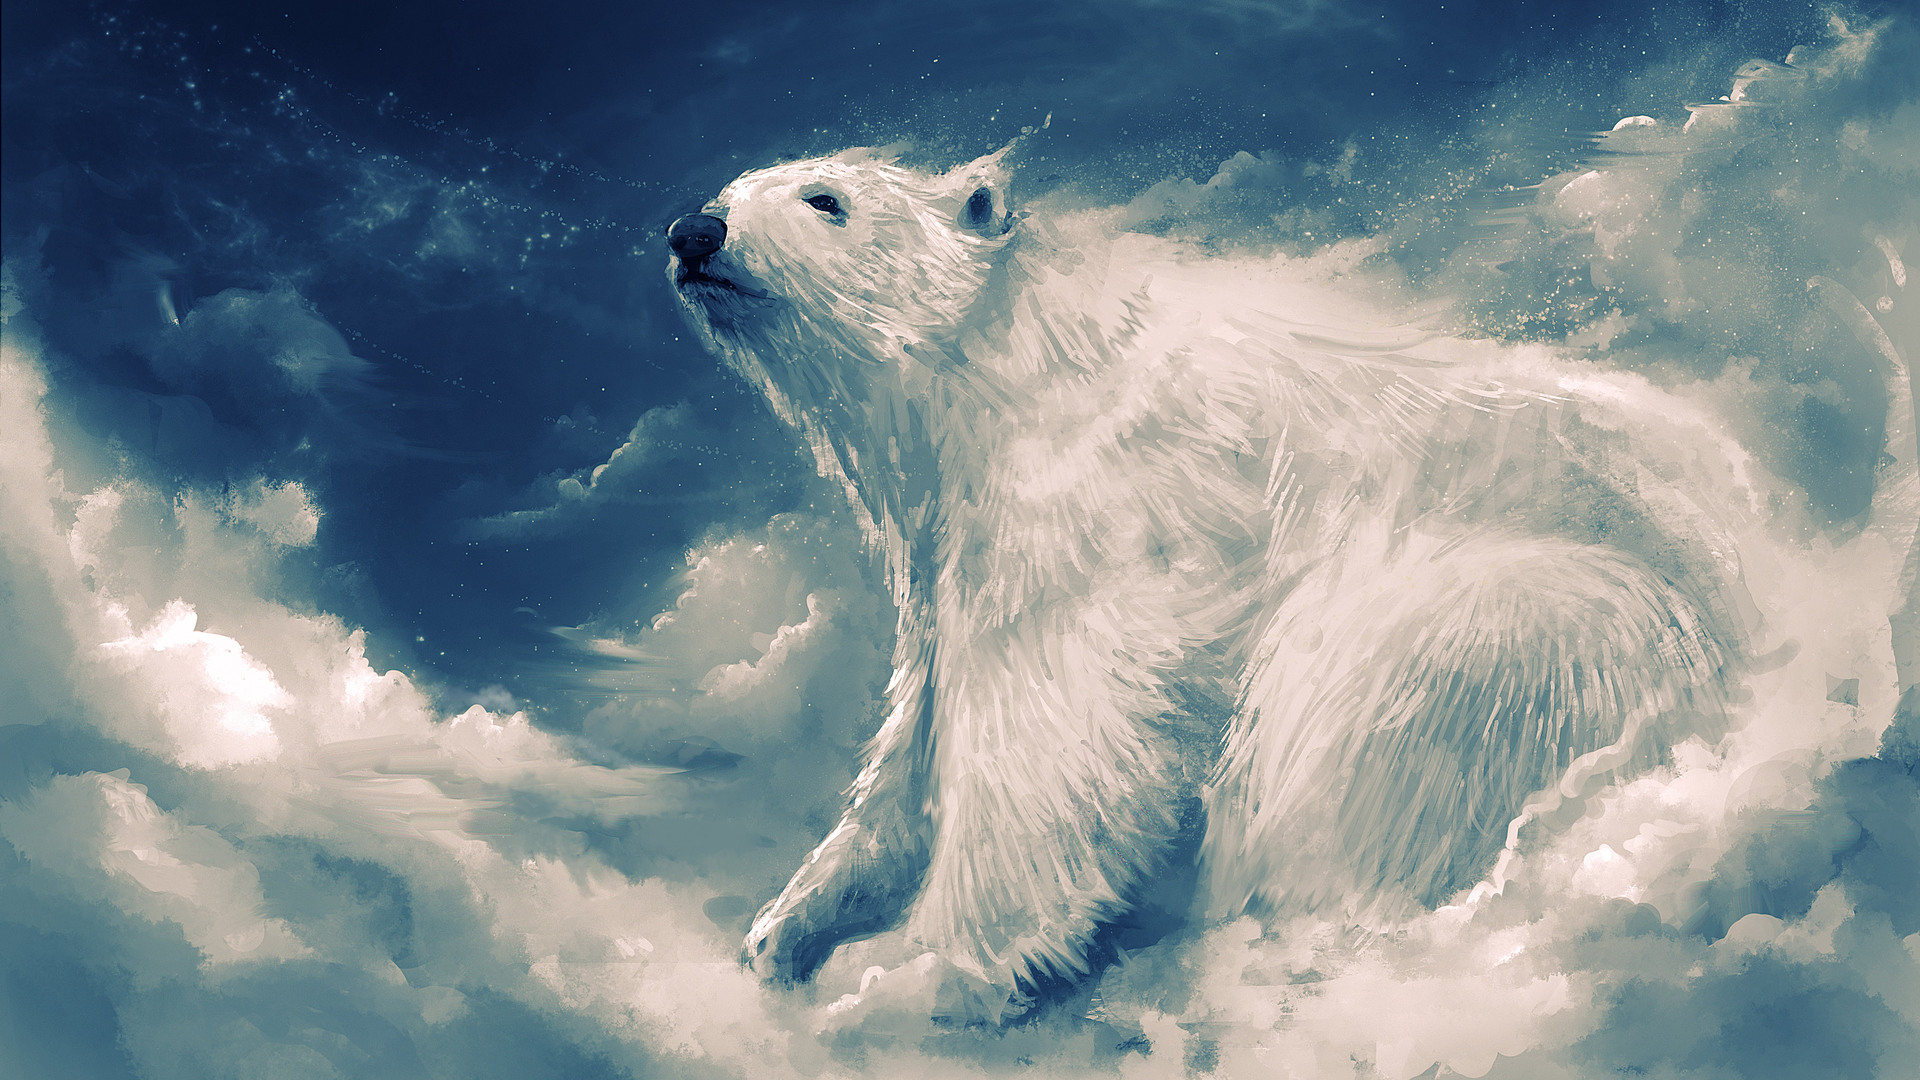 1920x1080 polar bear artwork 4k laptop full hd 1080p hd 4k